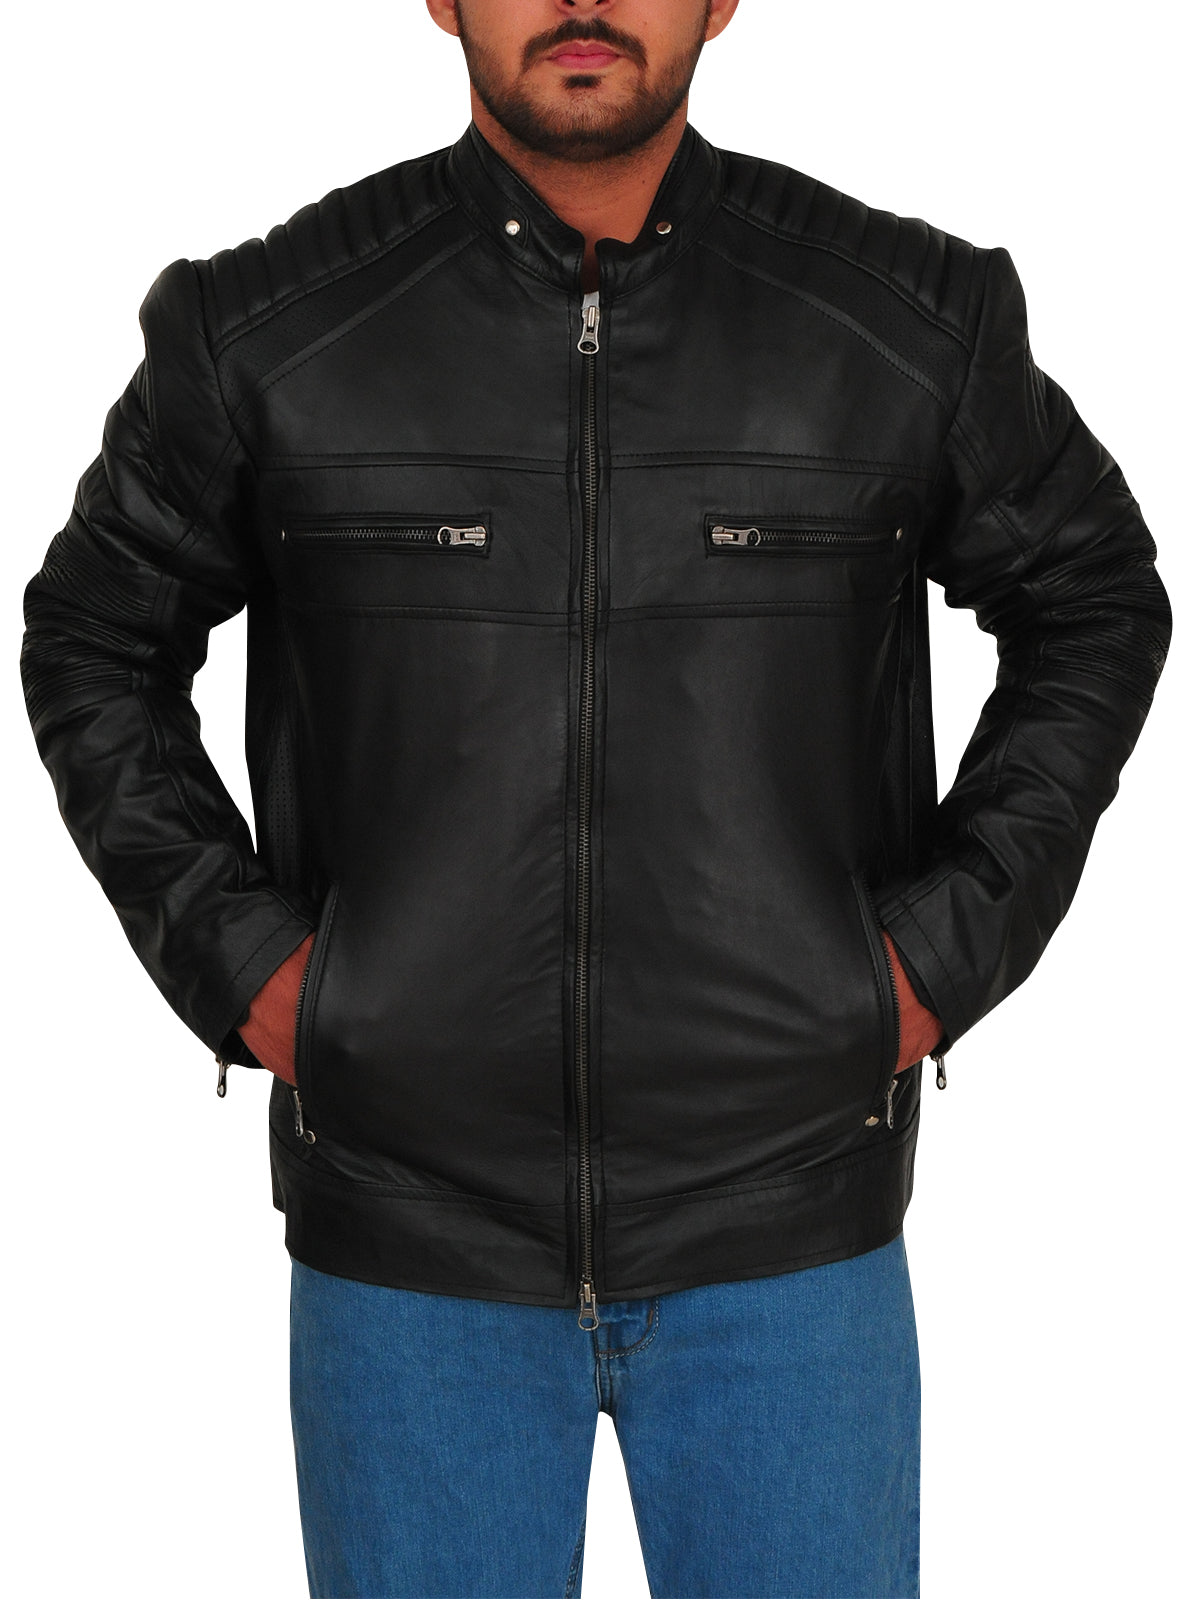 Chuck Clayton Riverdale Cafe Racer Jacket